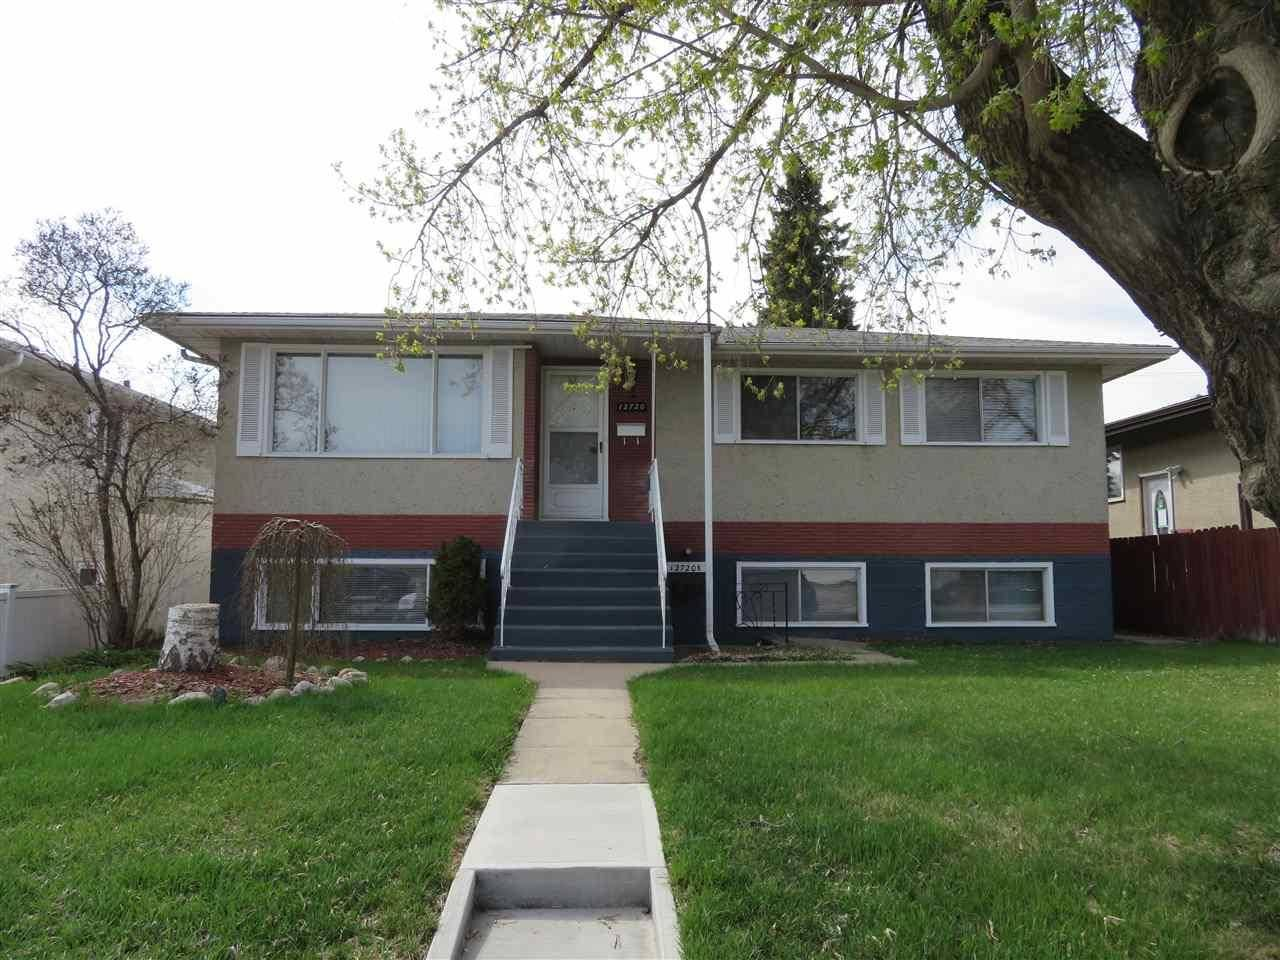 Townhouse for sale at 12720 102 St Nw Edmonton Alberta - MLS: E4175827